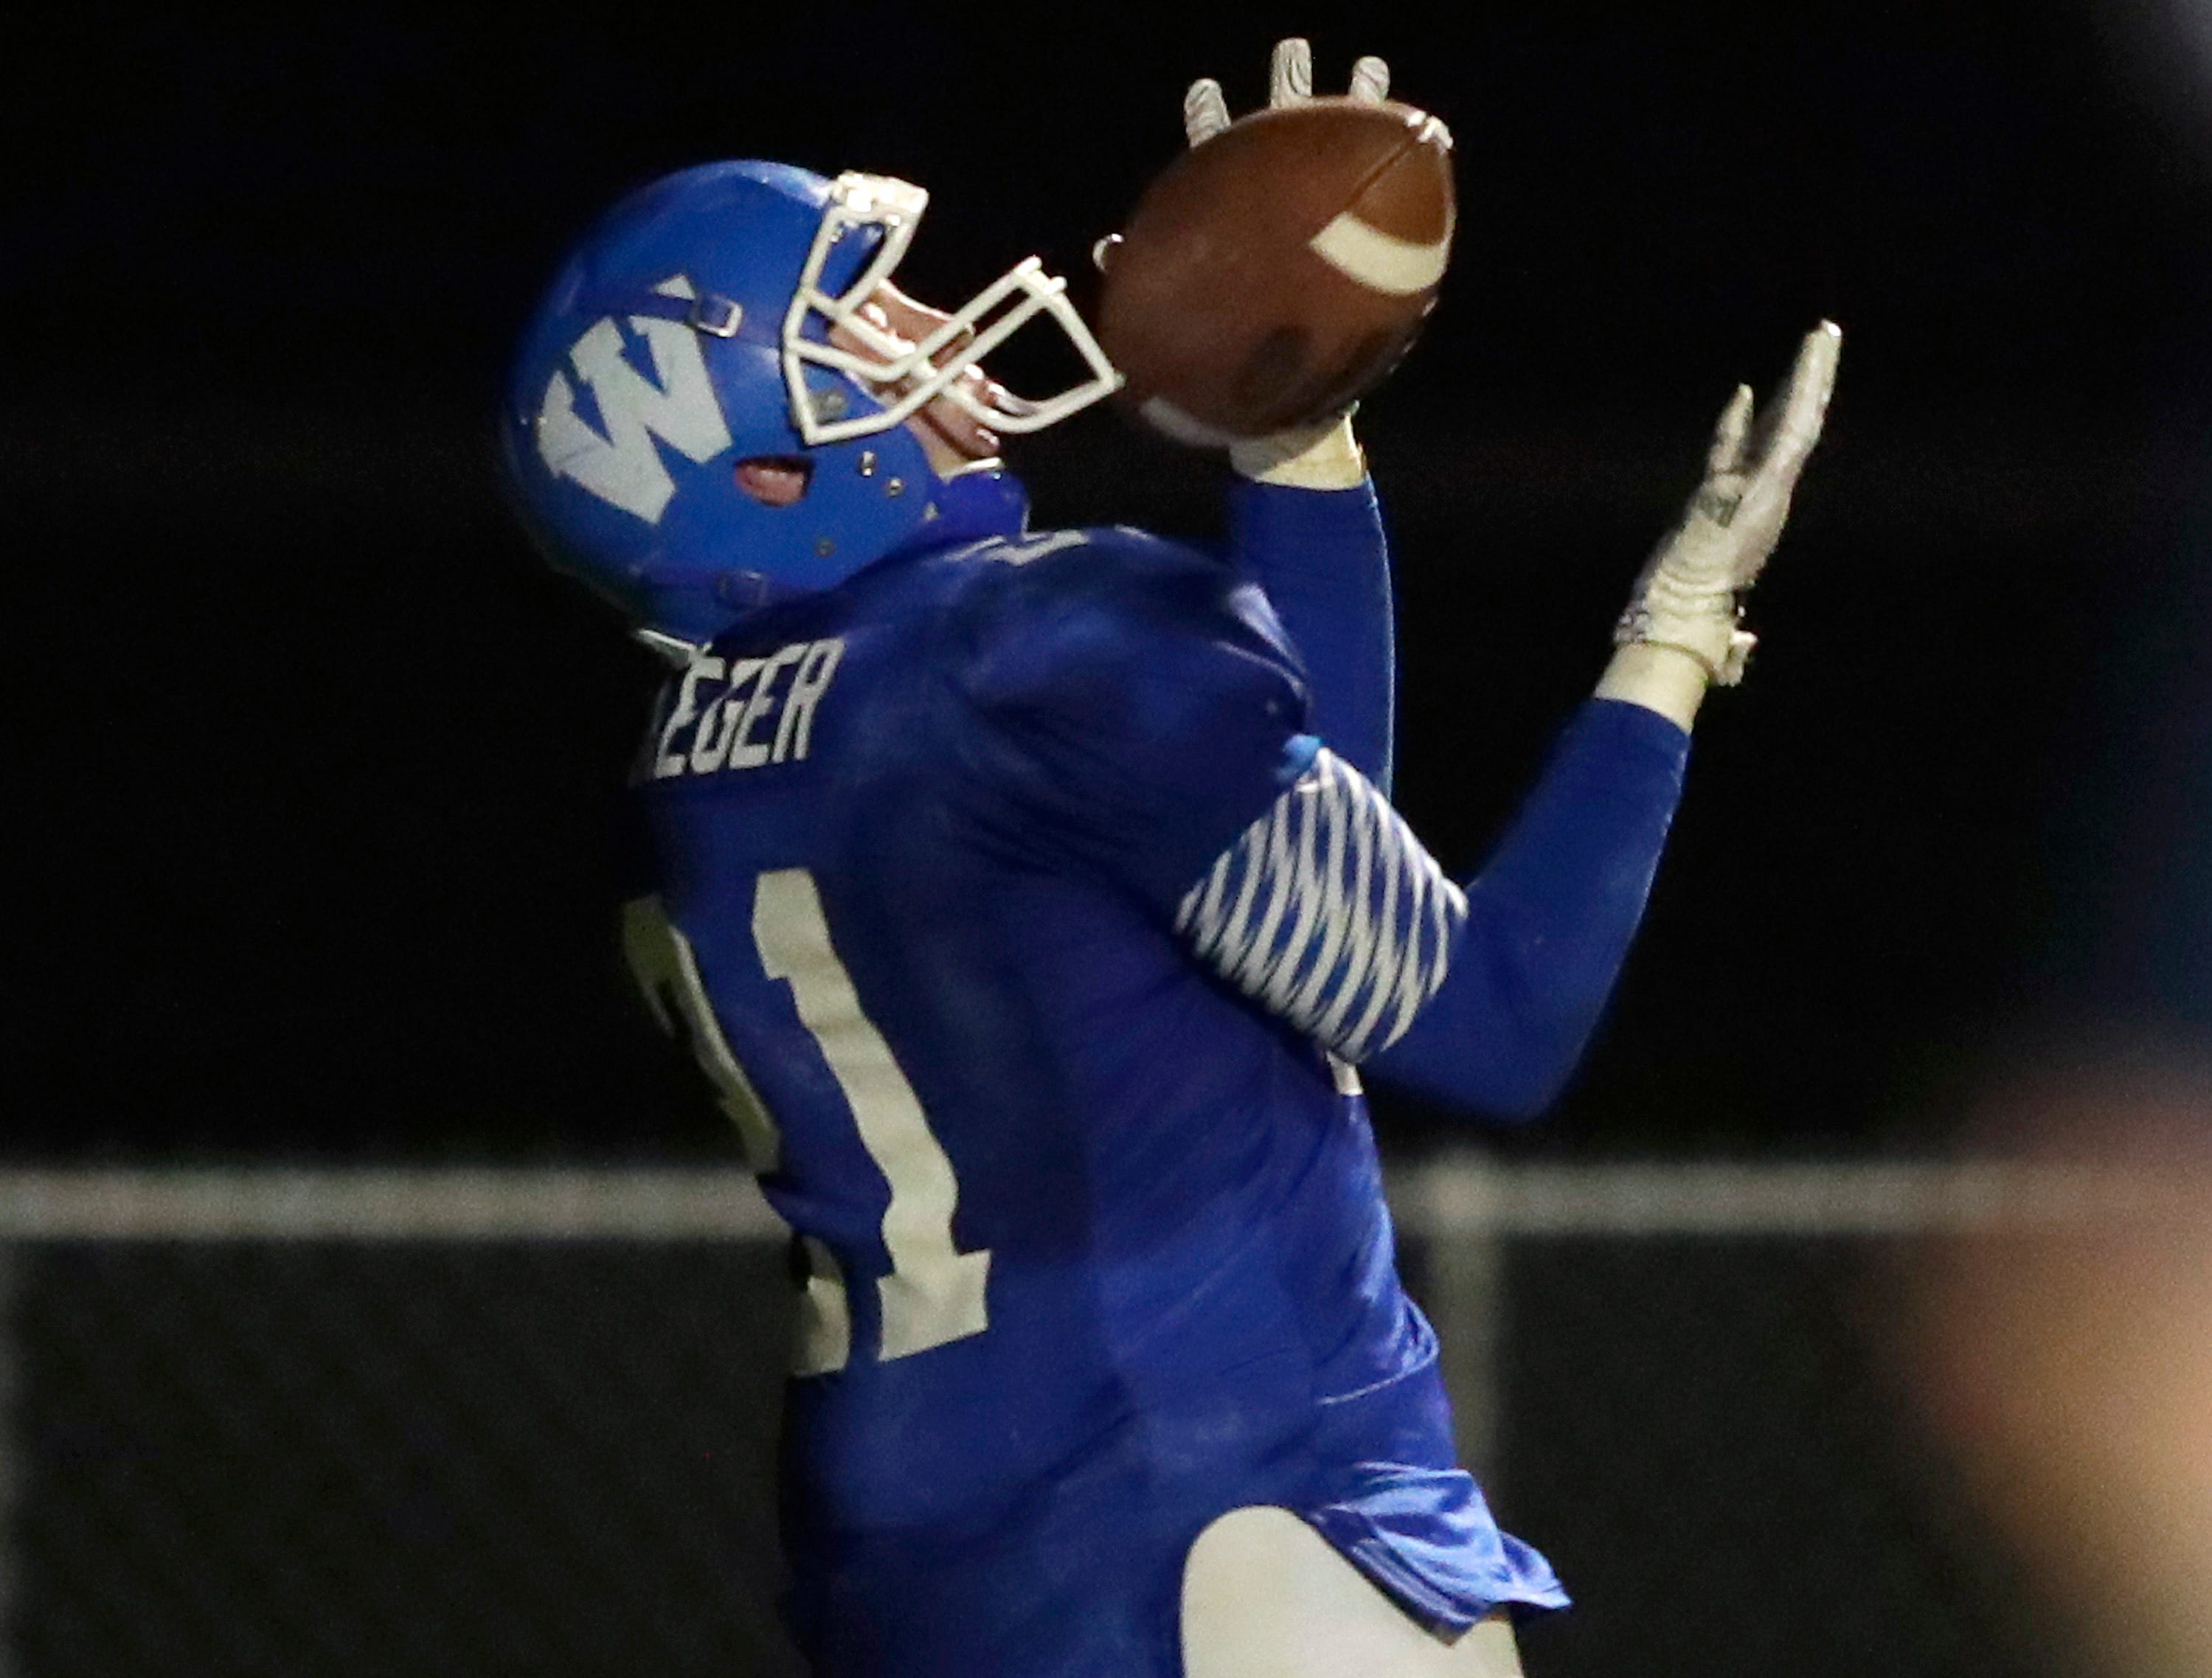 Wrightstown High School's #21 Ben Jaeger against Little Chute High School during their North Eastern Conference football game on Friday, October 12, 2018 in Wrightstown Wis. 